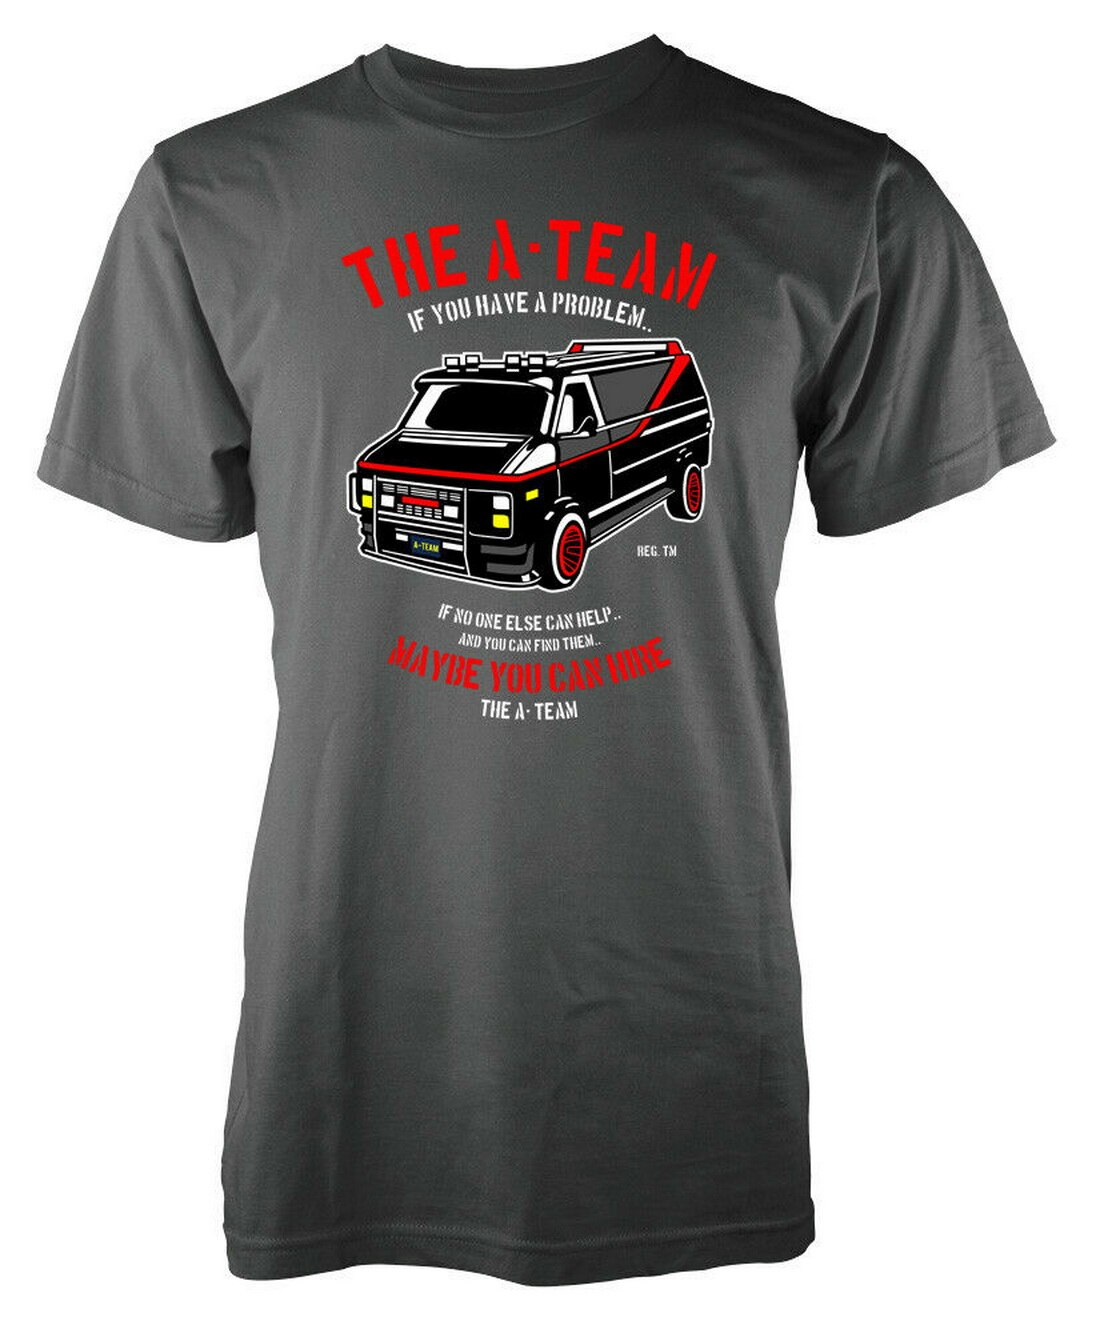 If You Have A Problem Maybe You Can Hire The A Team Adult Tops Tee T Shirt Casual Plus Size T-Shirt